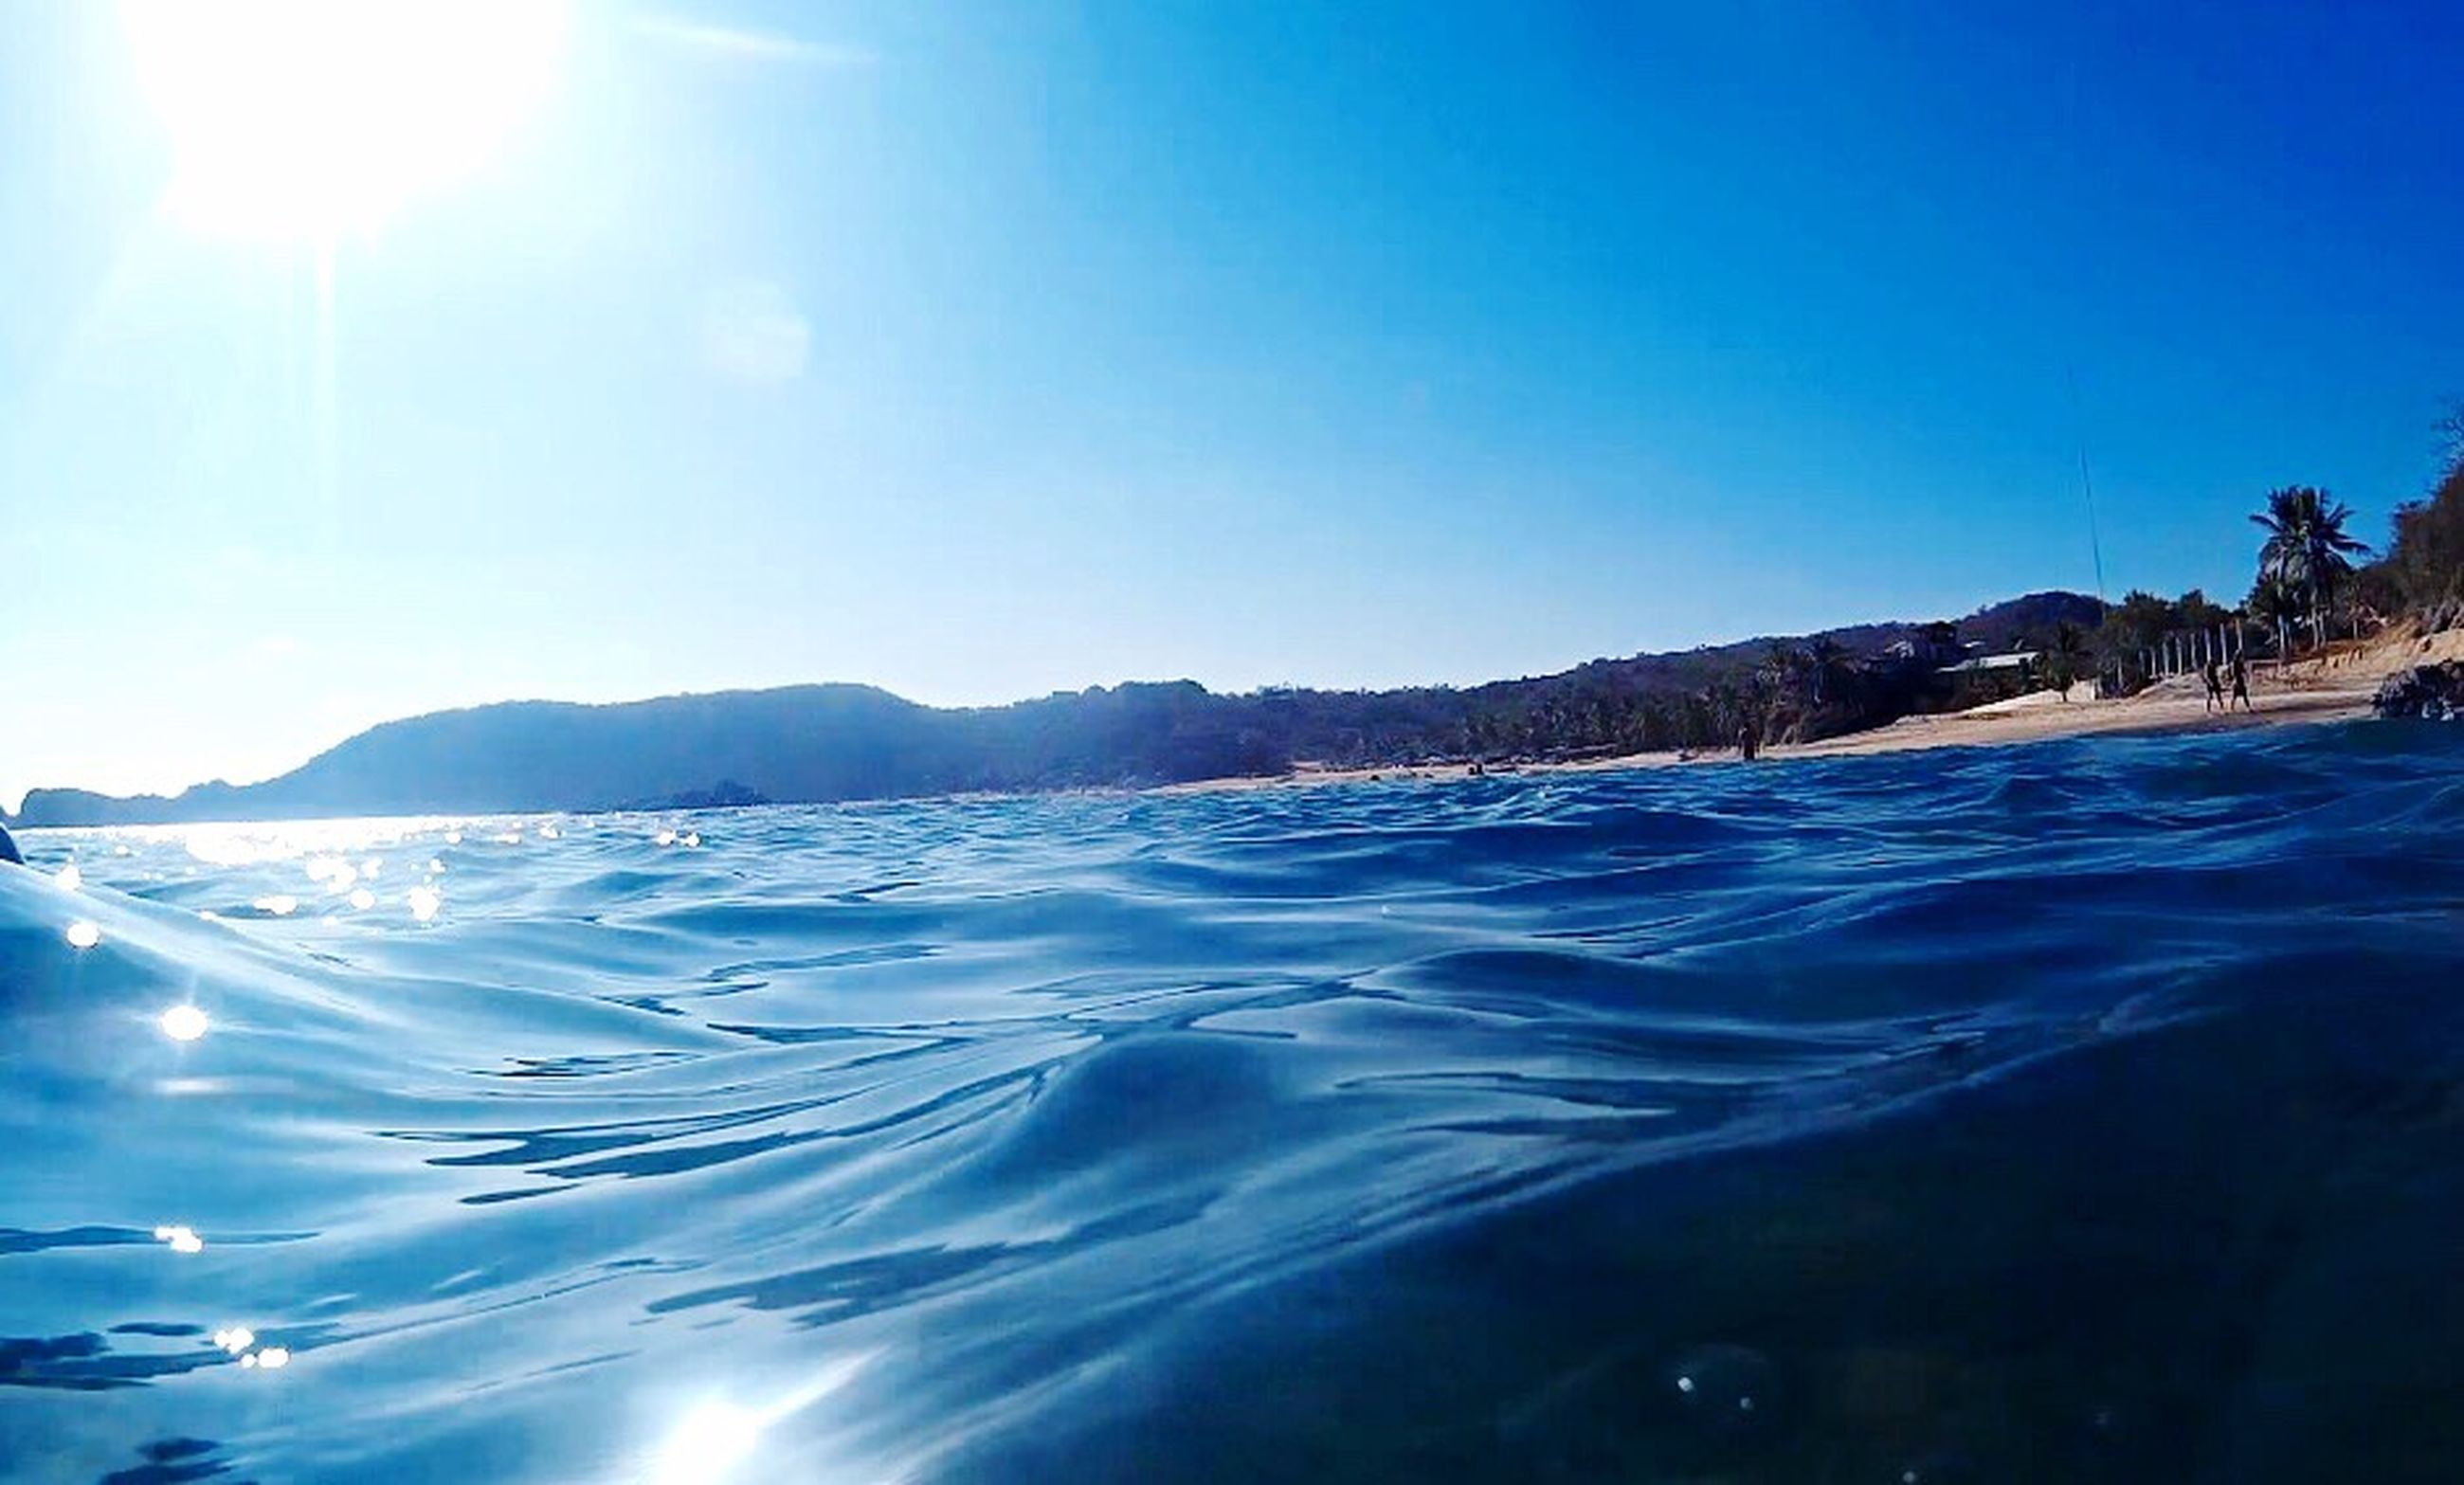 blue, beauty in nature, scenics, nature, sea, landscape, outdoors, sky, mountain, cold temperature, clear sky, tranquil scene, water, ice, no people, day, refraction